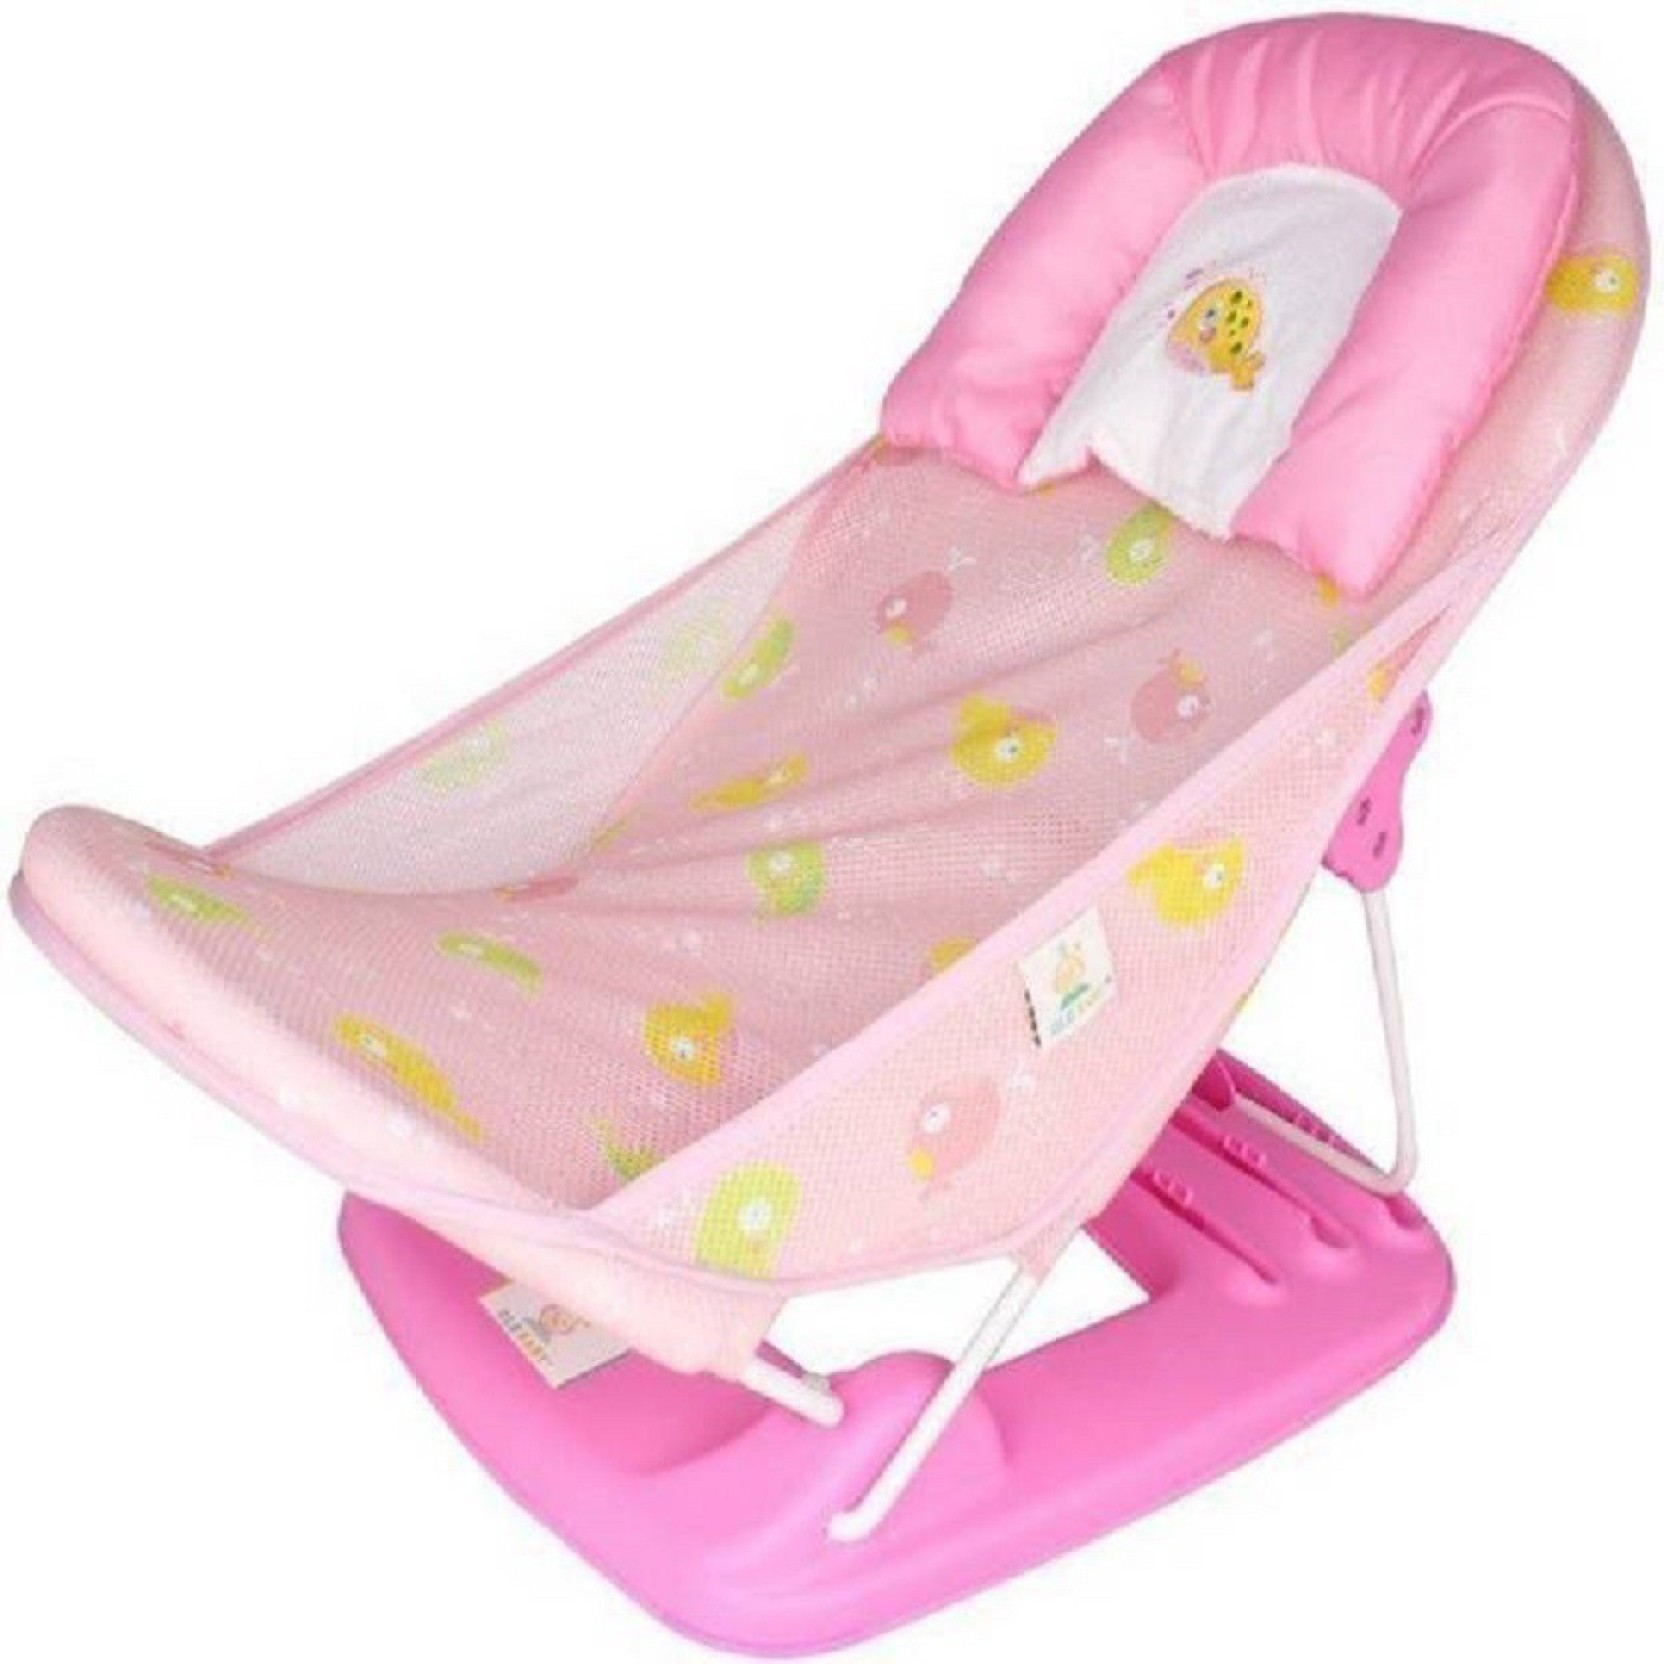 Comfortable Baby Bath Seat Pink Images - Bathroom with Bathtub ...